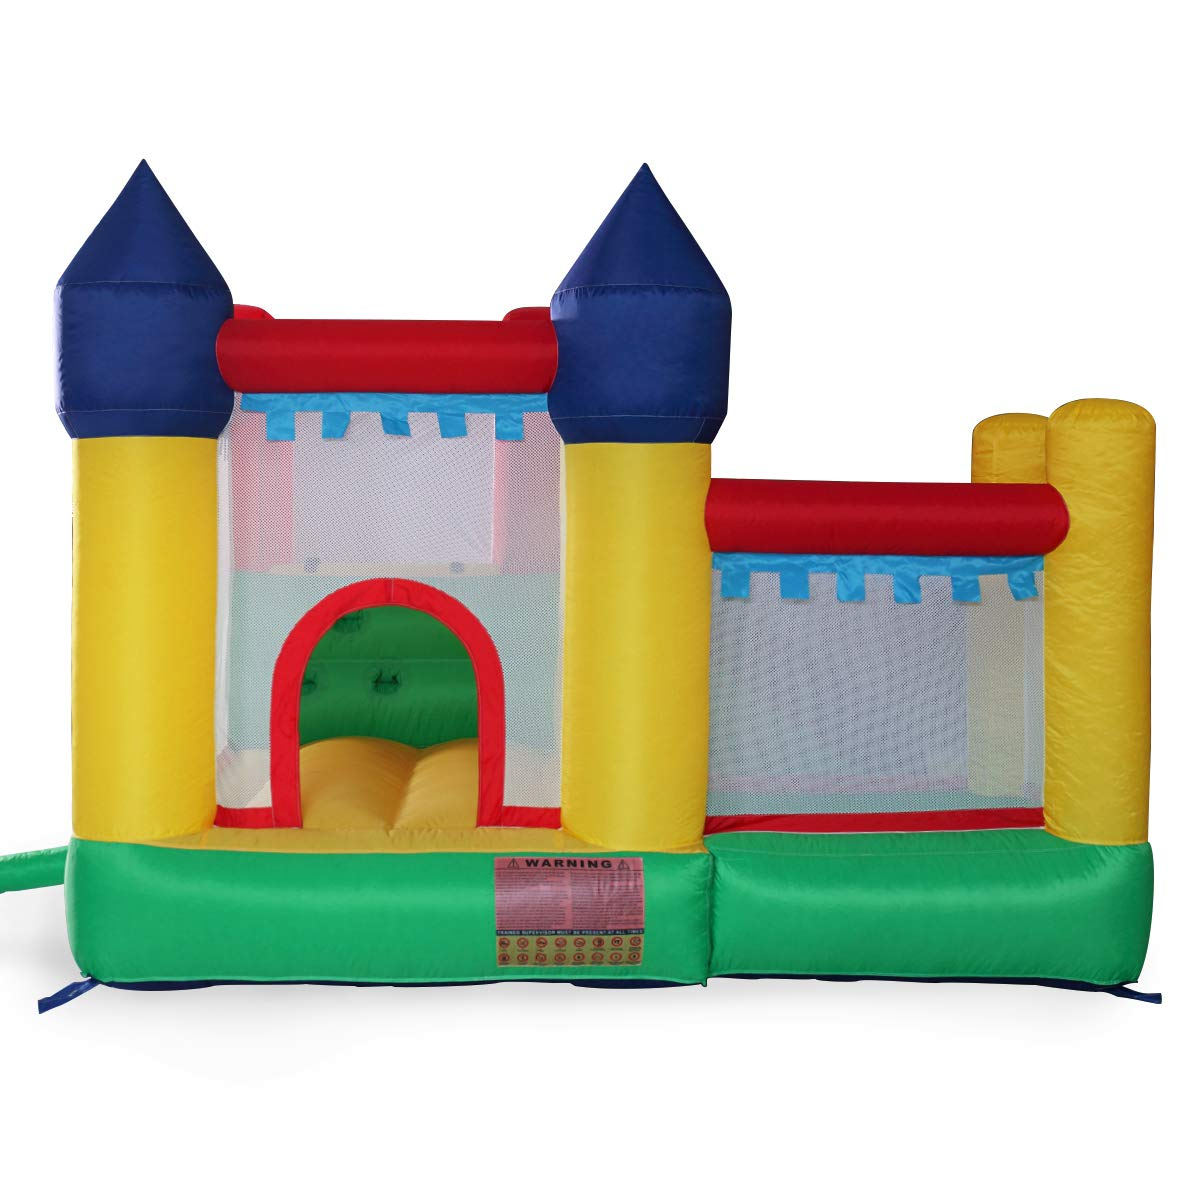 Kids Inflatable Bounce House Castle Jumper Slide Moonwalk Without Blower by BWM.Co (Image #2)